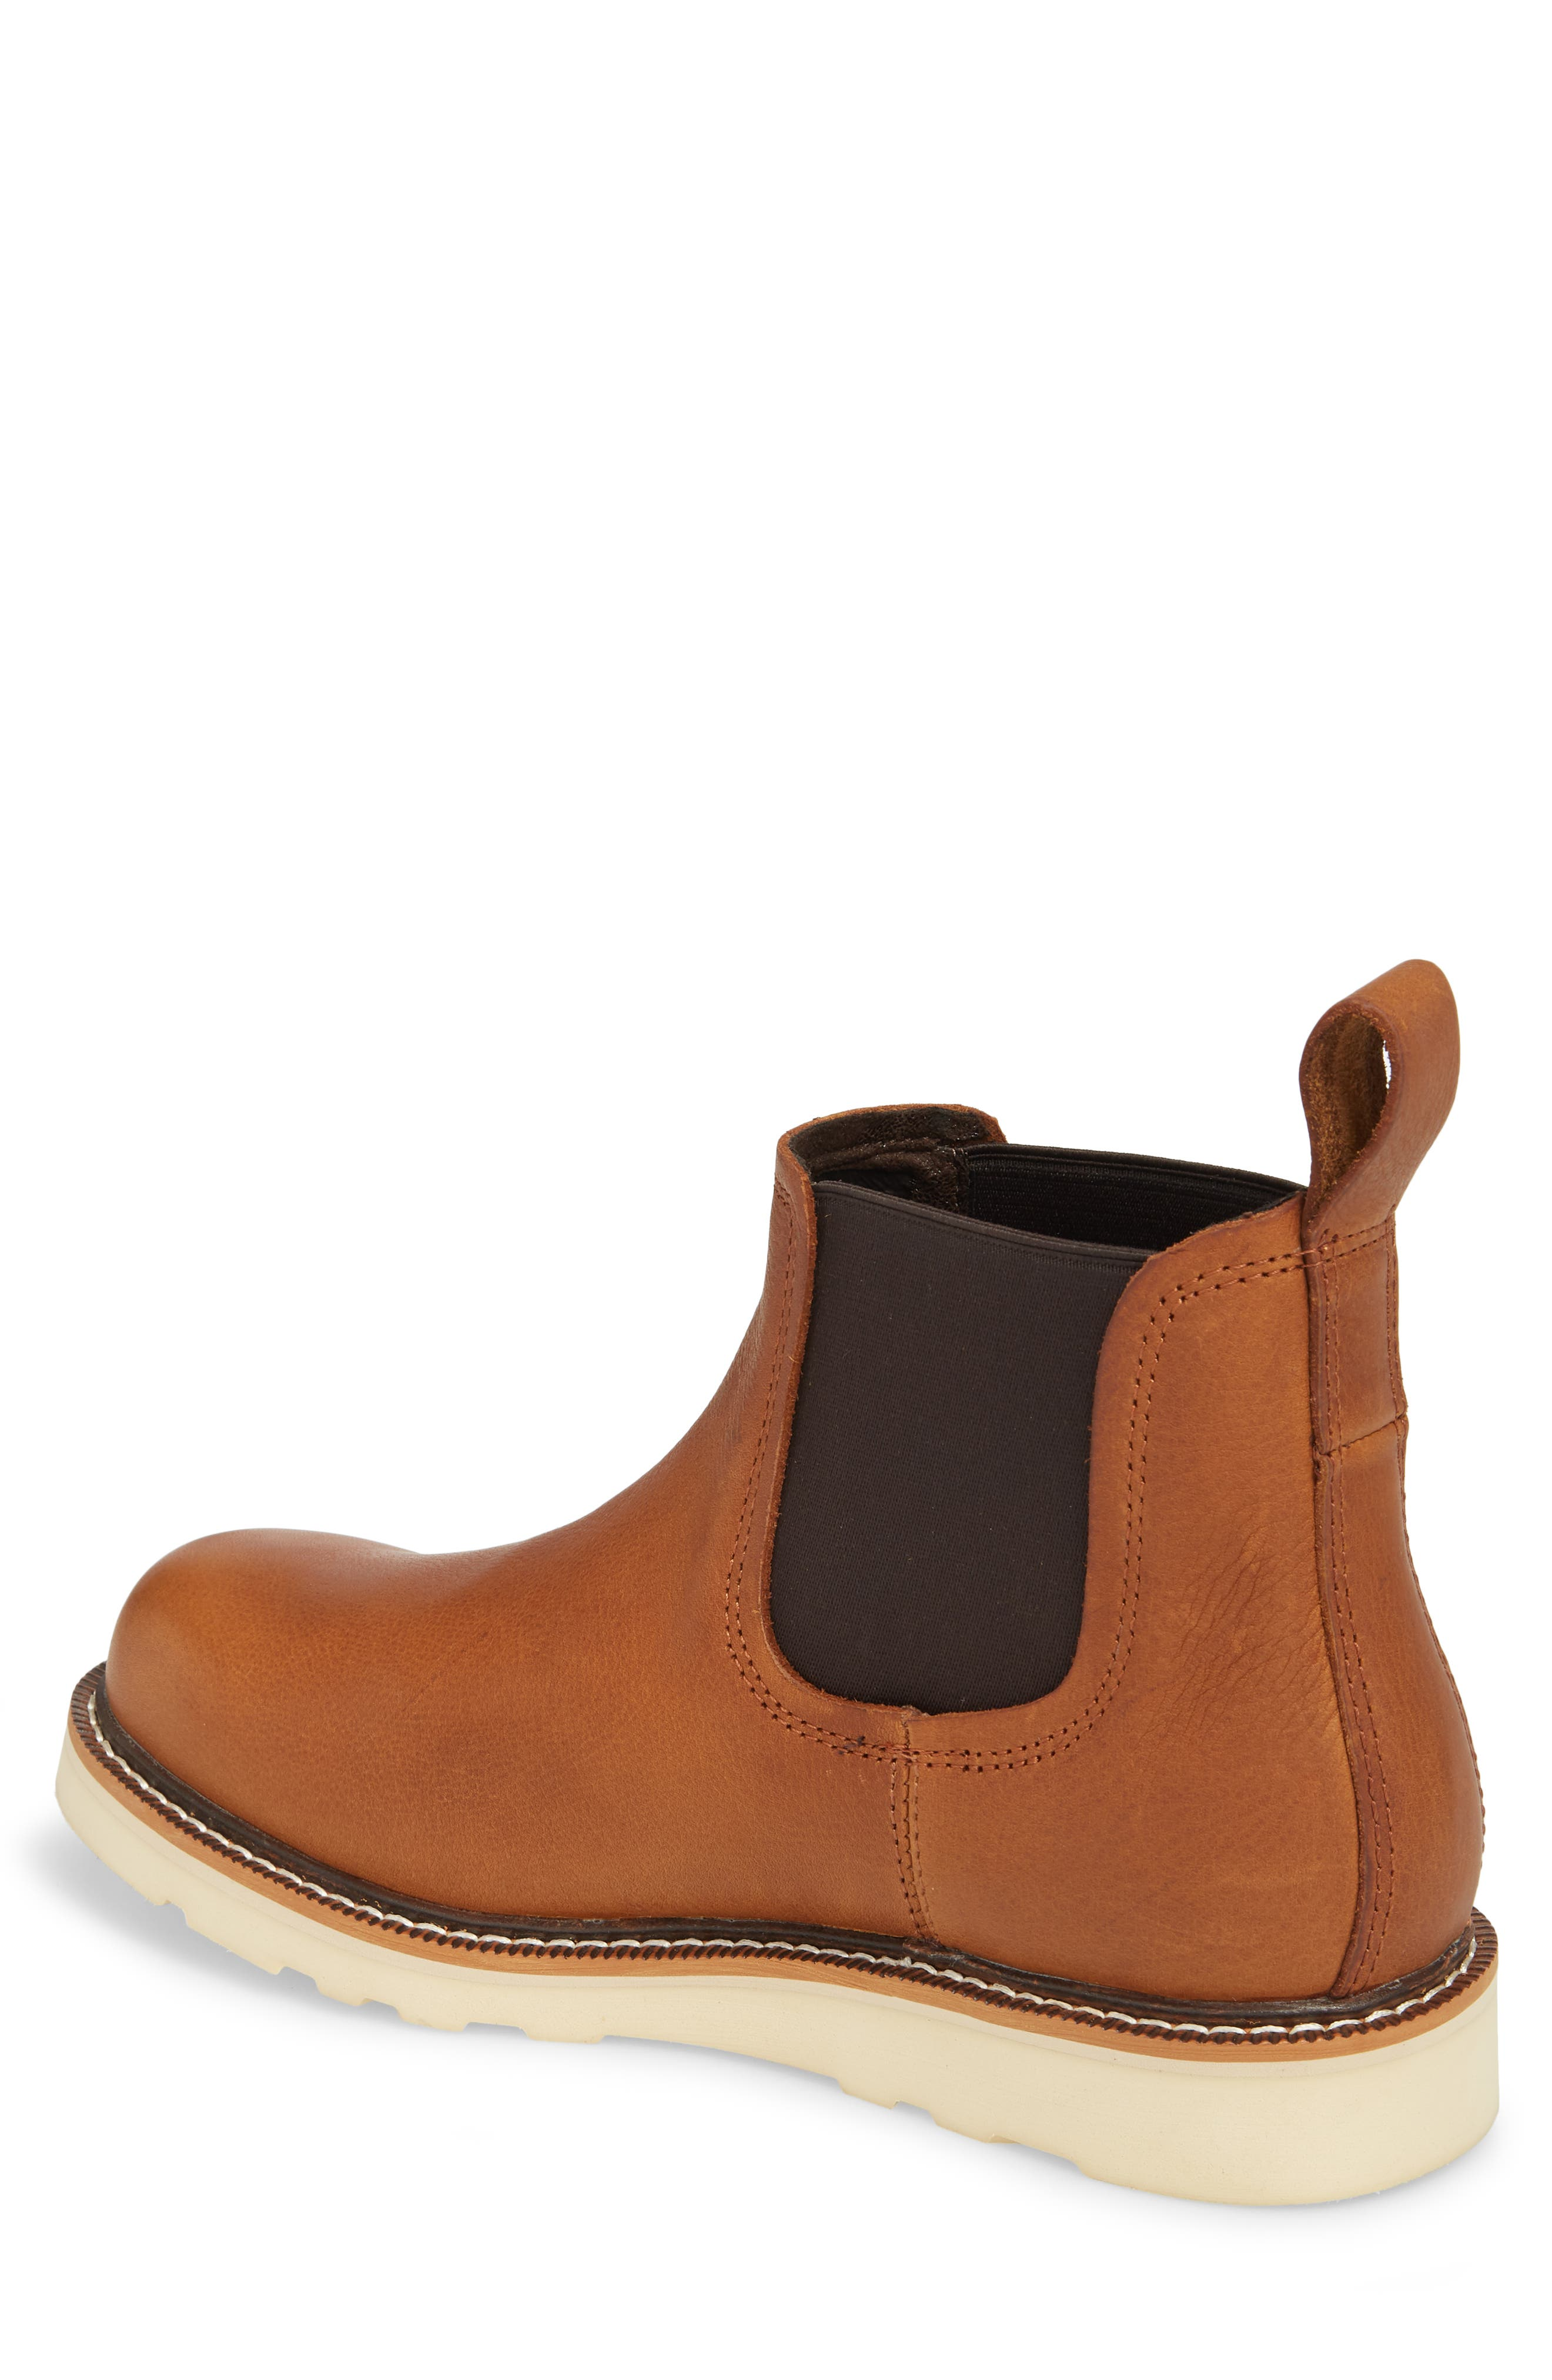 Rambler Recon Mid Chelsea Boot,                             Alternate thumbnail 2, color,                             Golden Grizzly